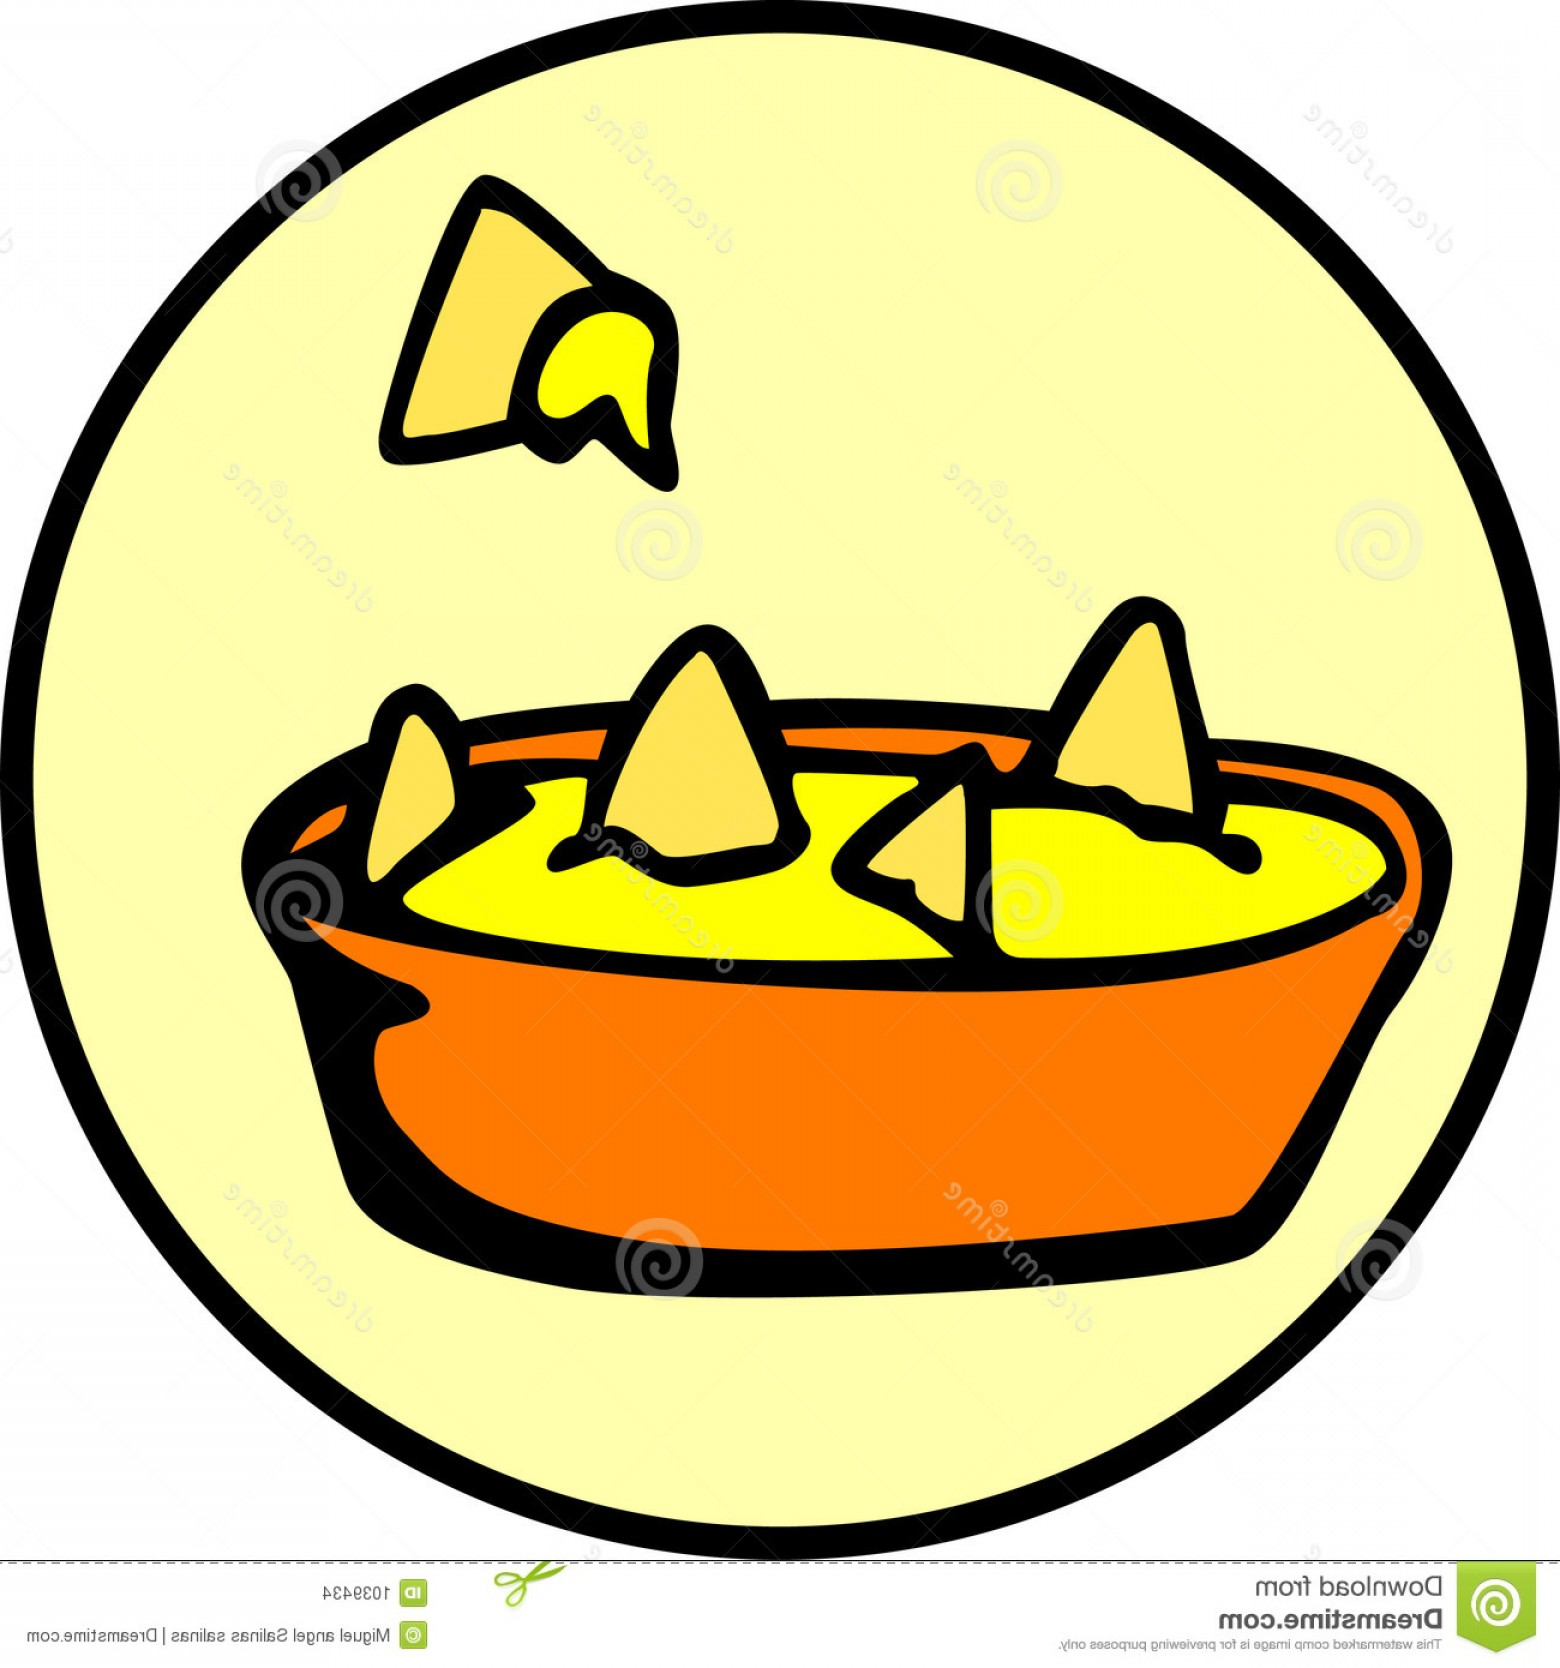 Chips Queso Vector: Stock Images Nachos Cheese Snack Vector File Available Image